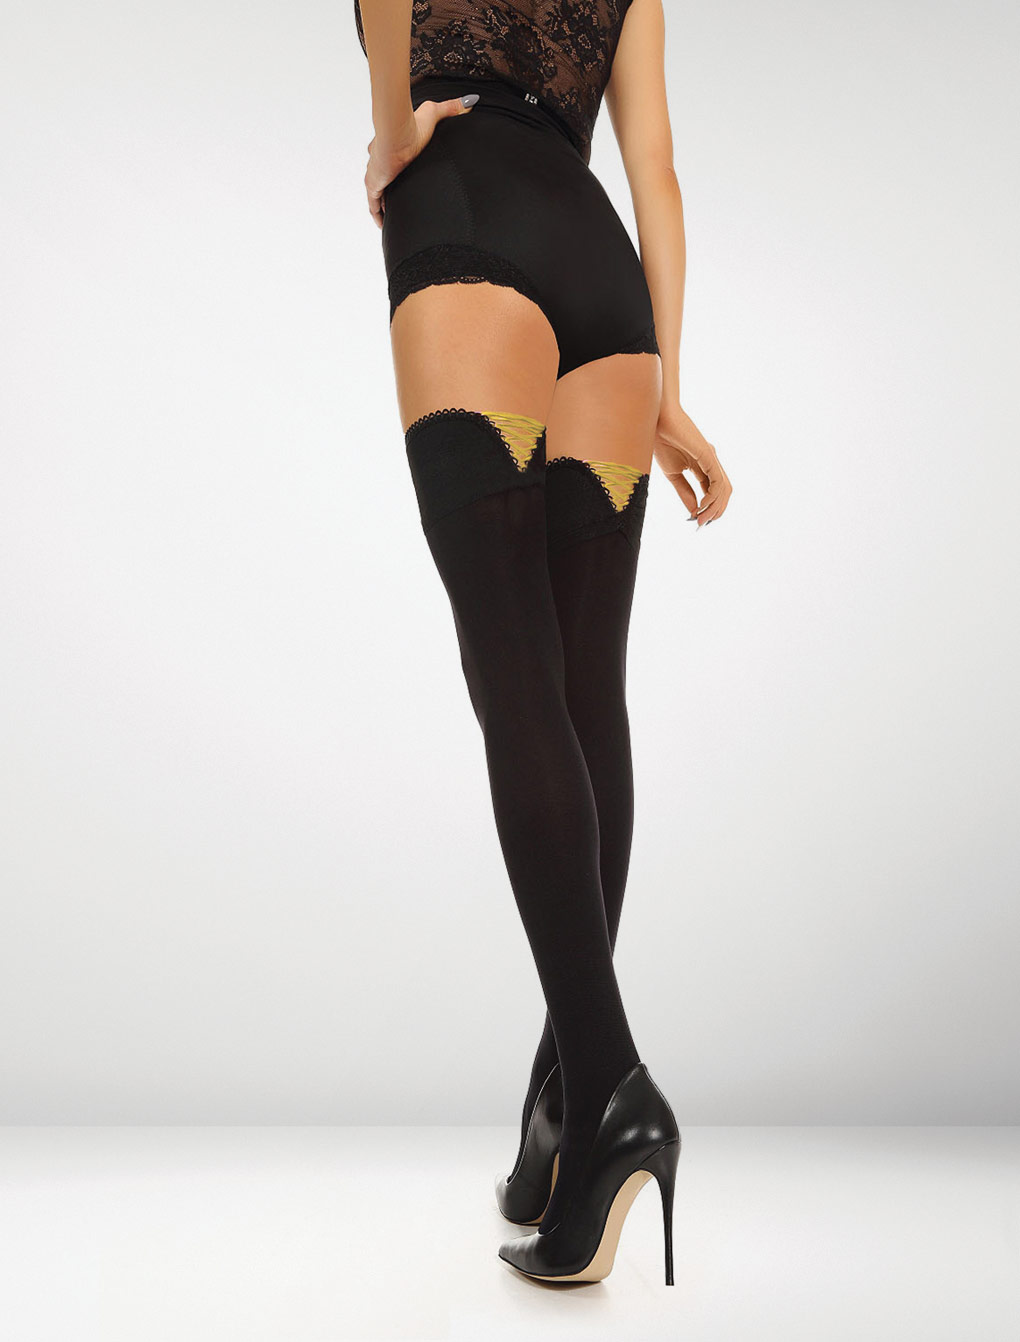 Ferrara 80 Denier Hold Ups Perfect Fit - Black / Gold Accent